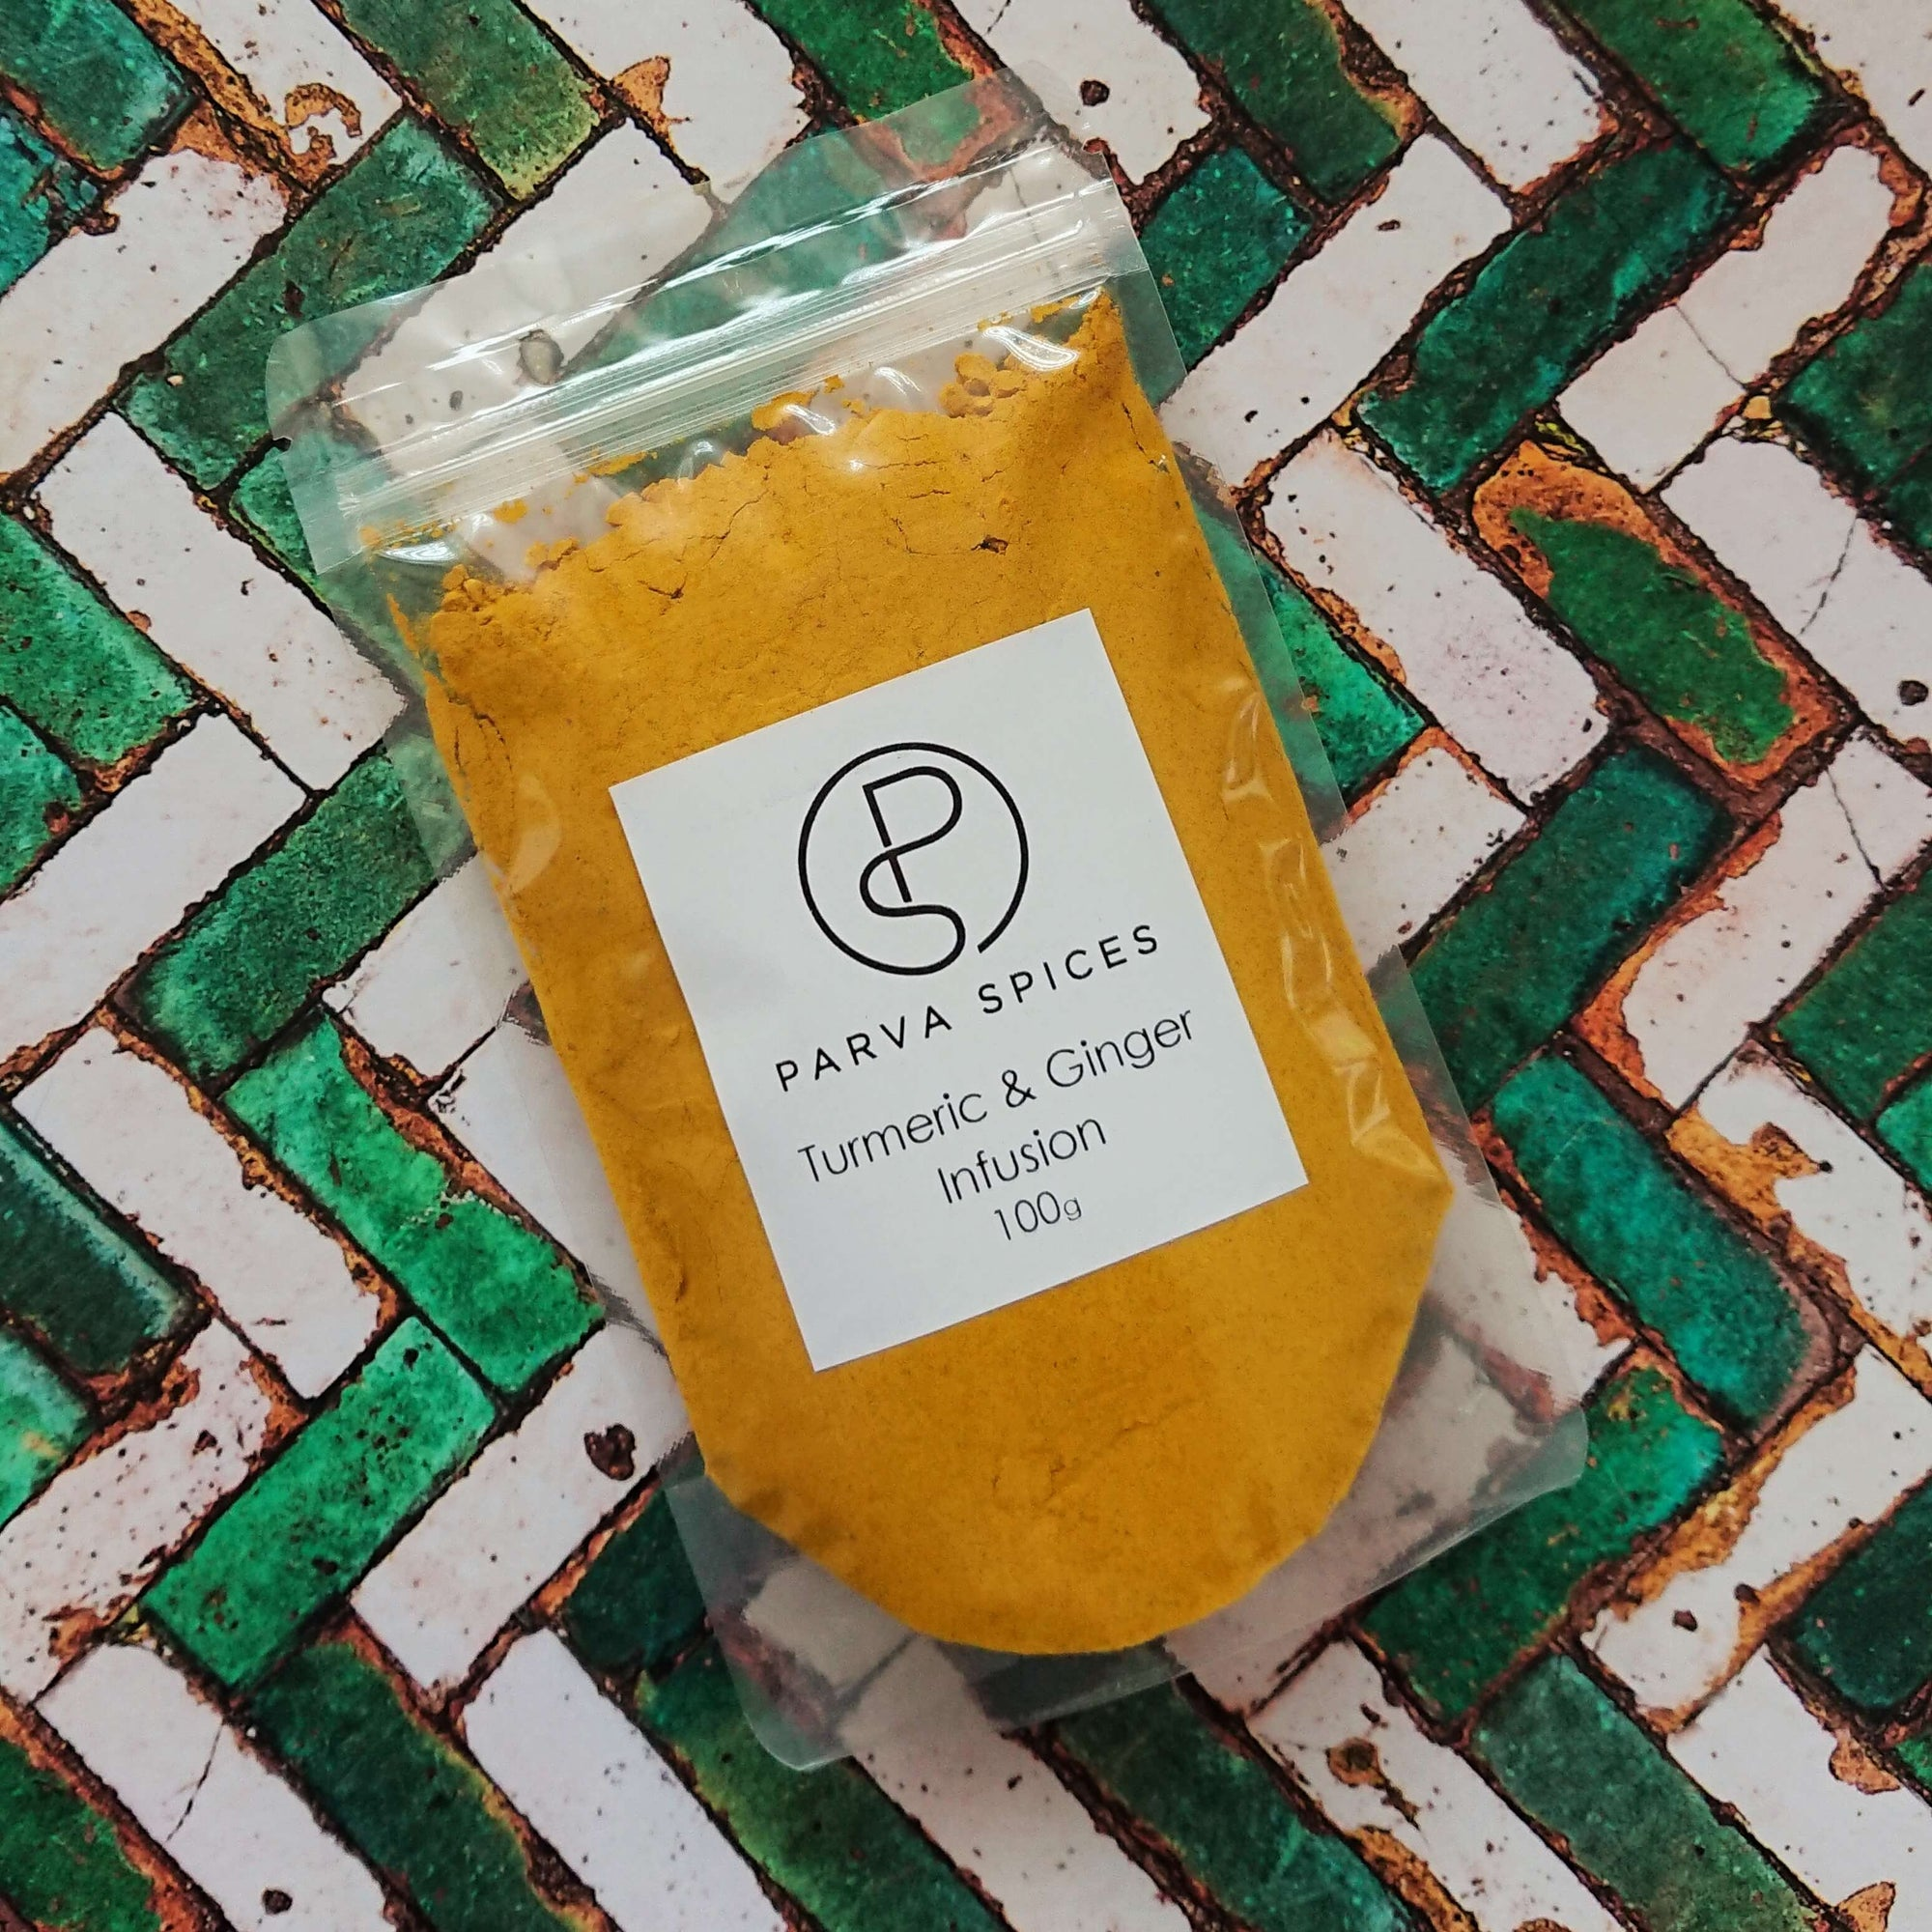 Turmeric and Ginger 100g refill